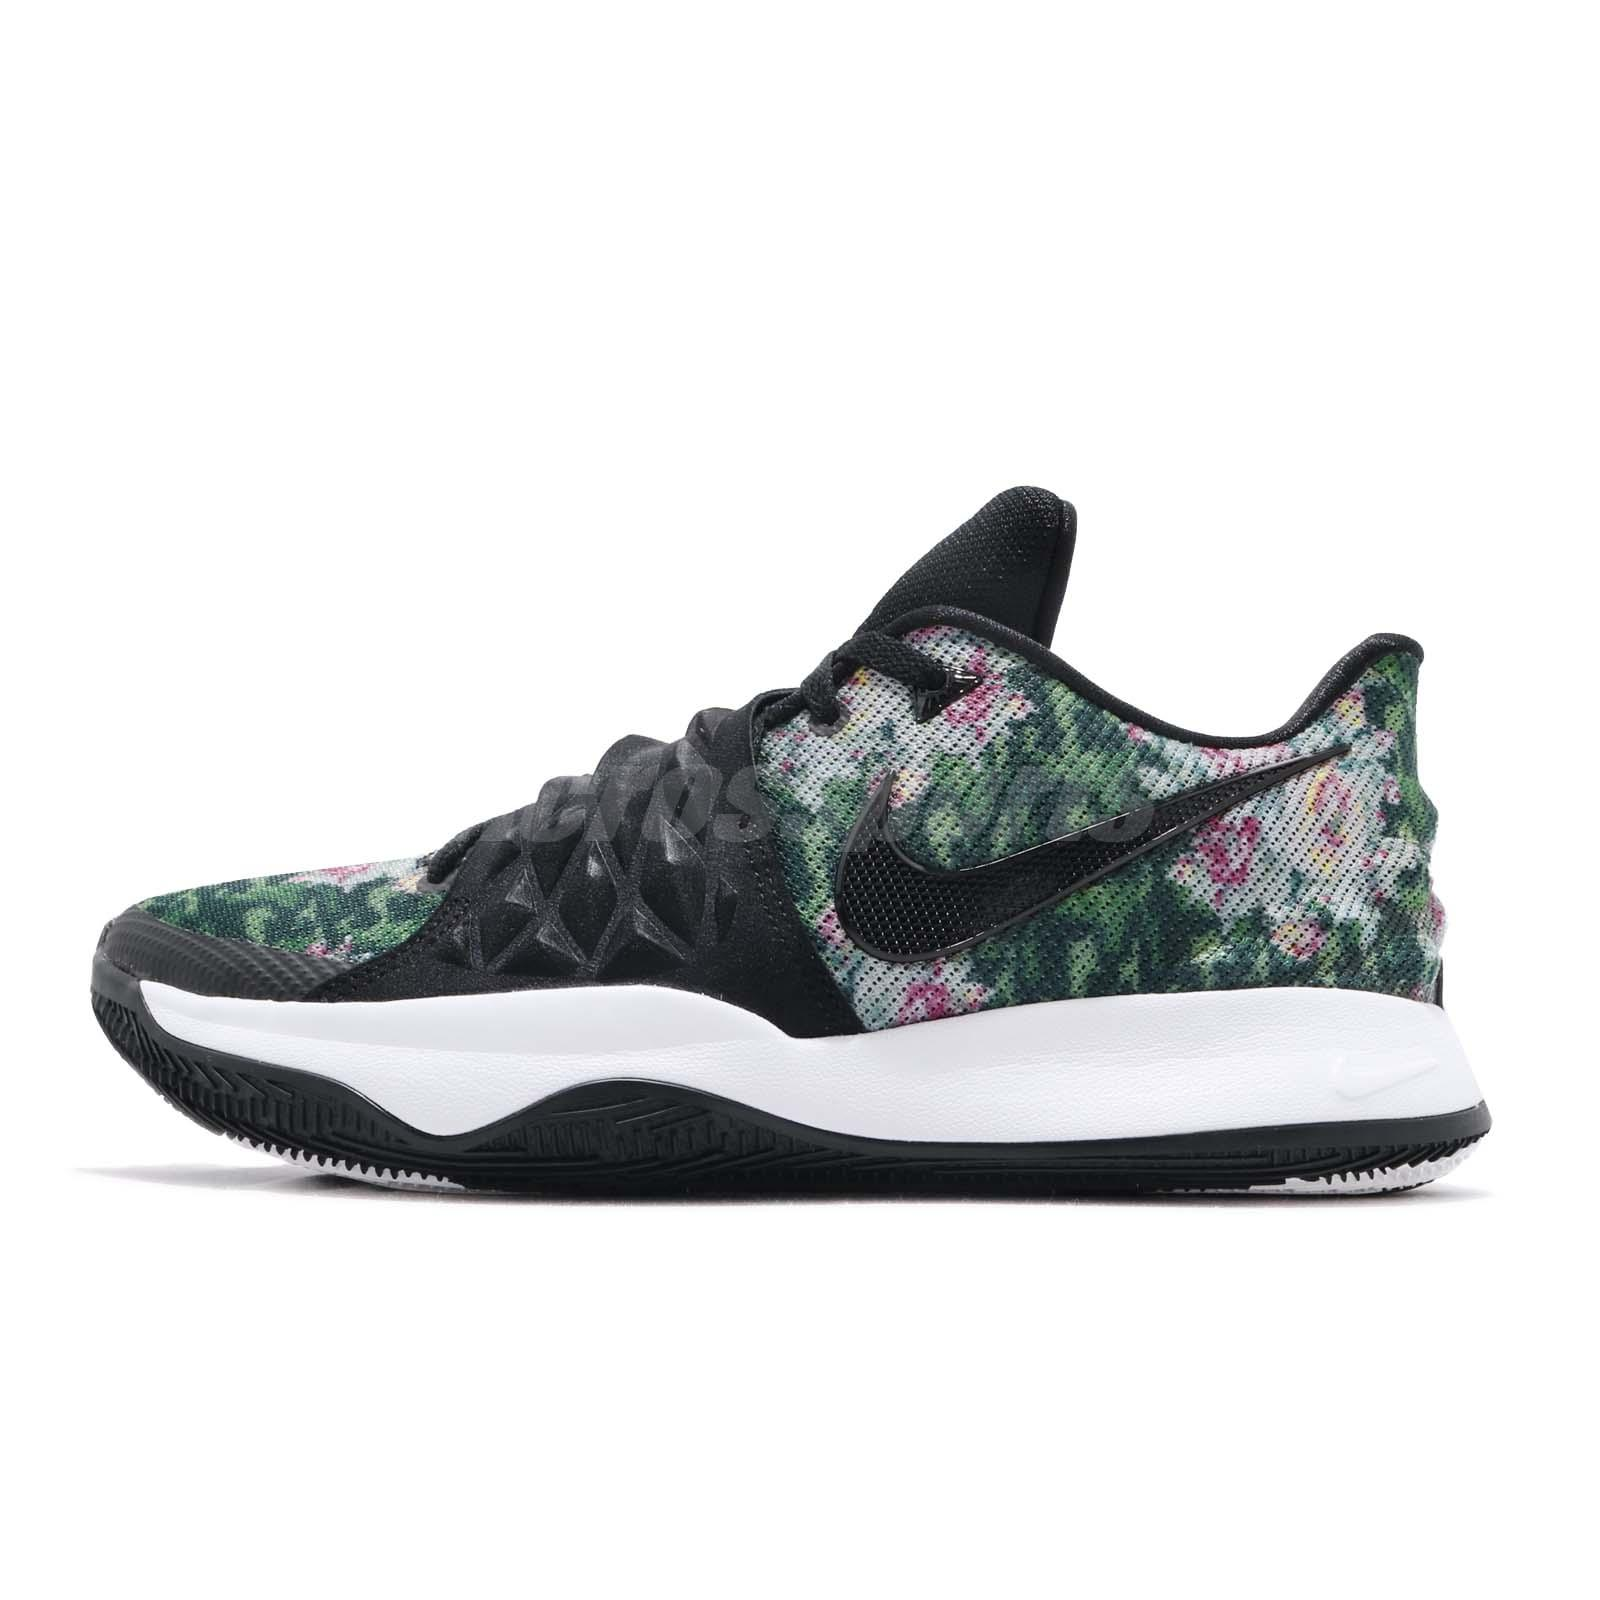 3bce04f22f5e Nike Kyrie Low EP Irving Floral Black Men Basketball Shoes Sneakers AO8980- 002